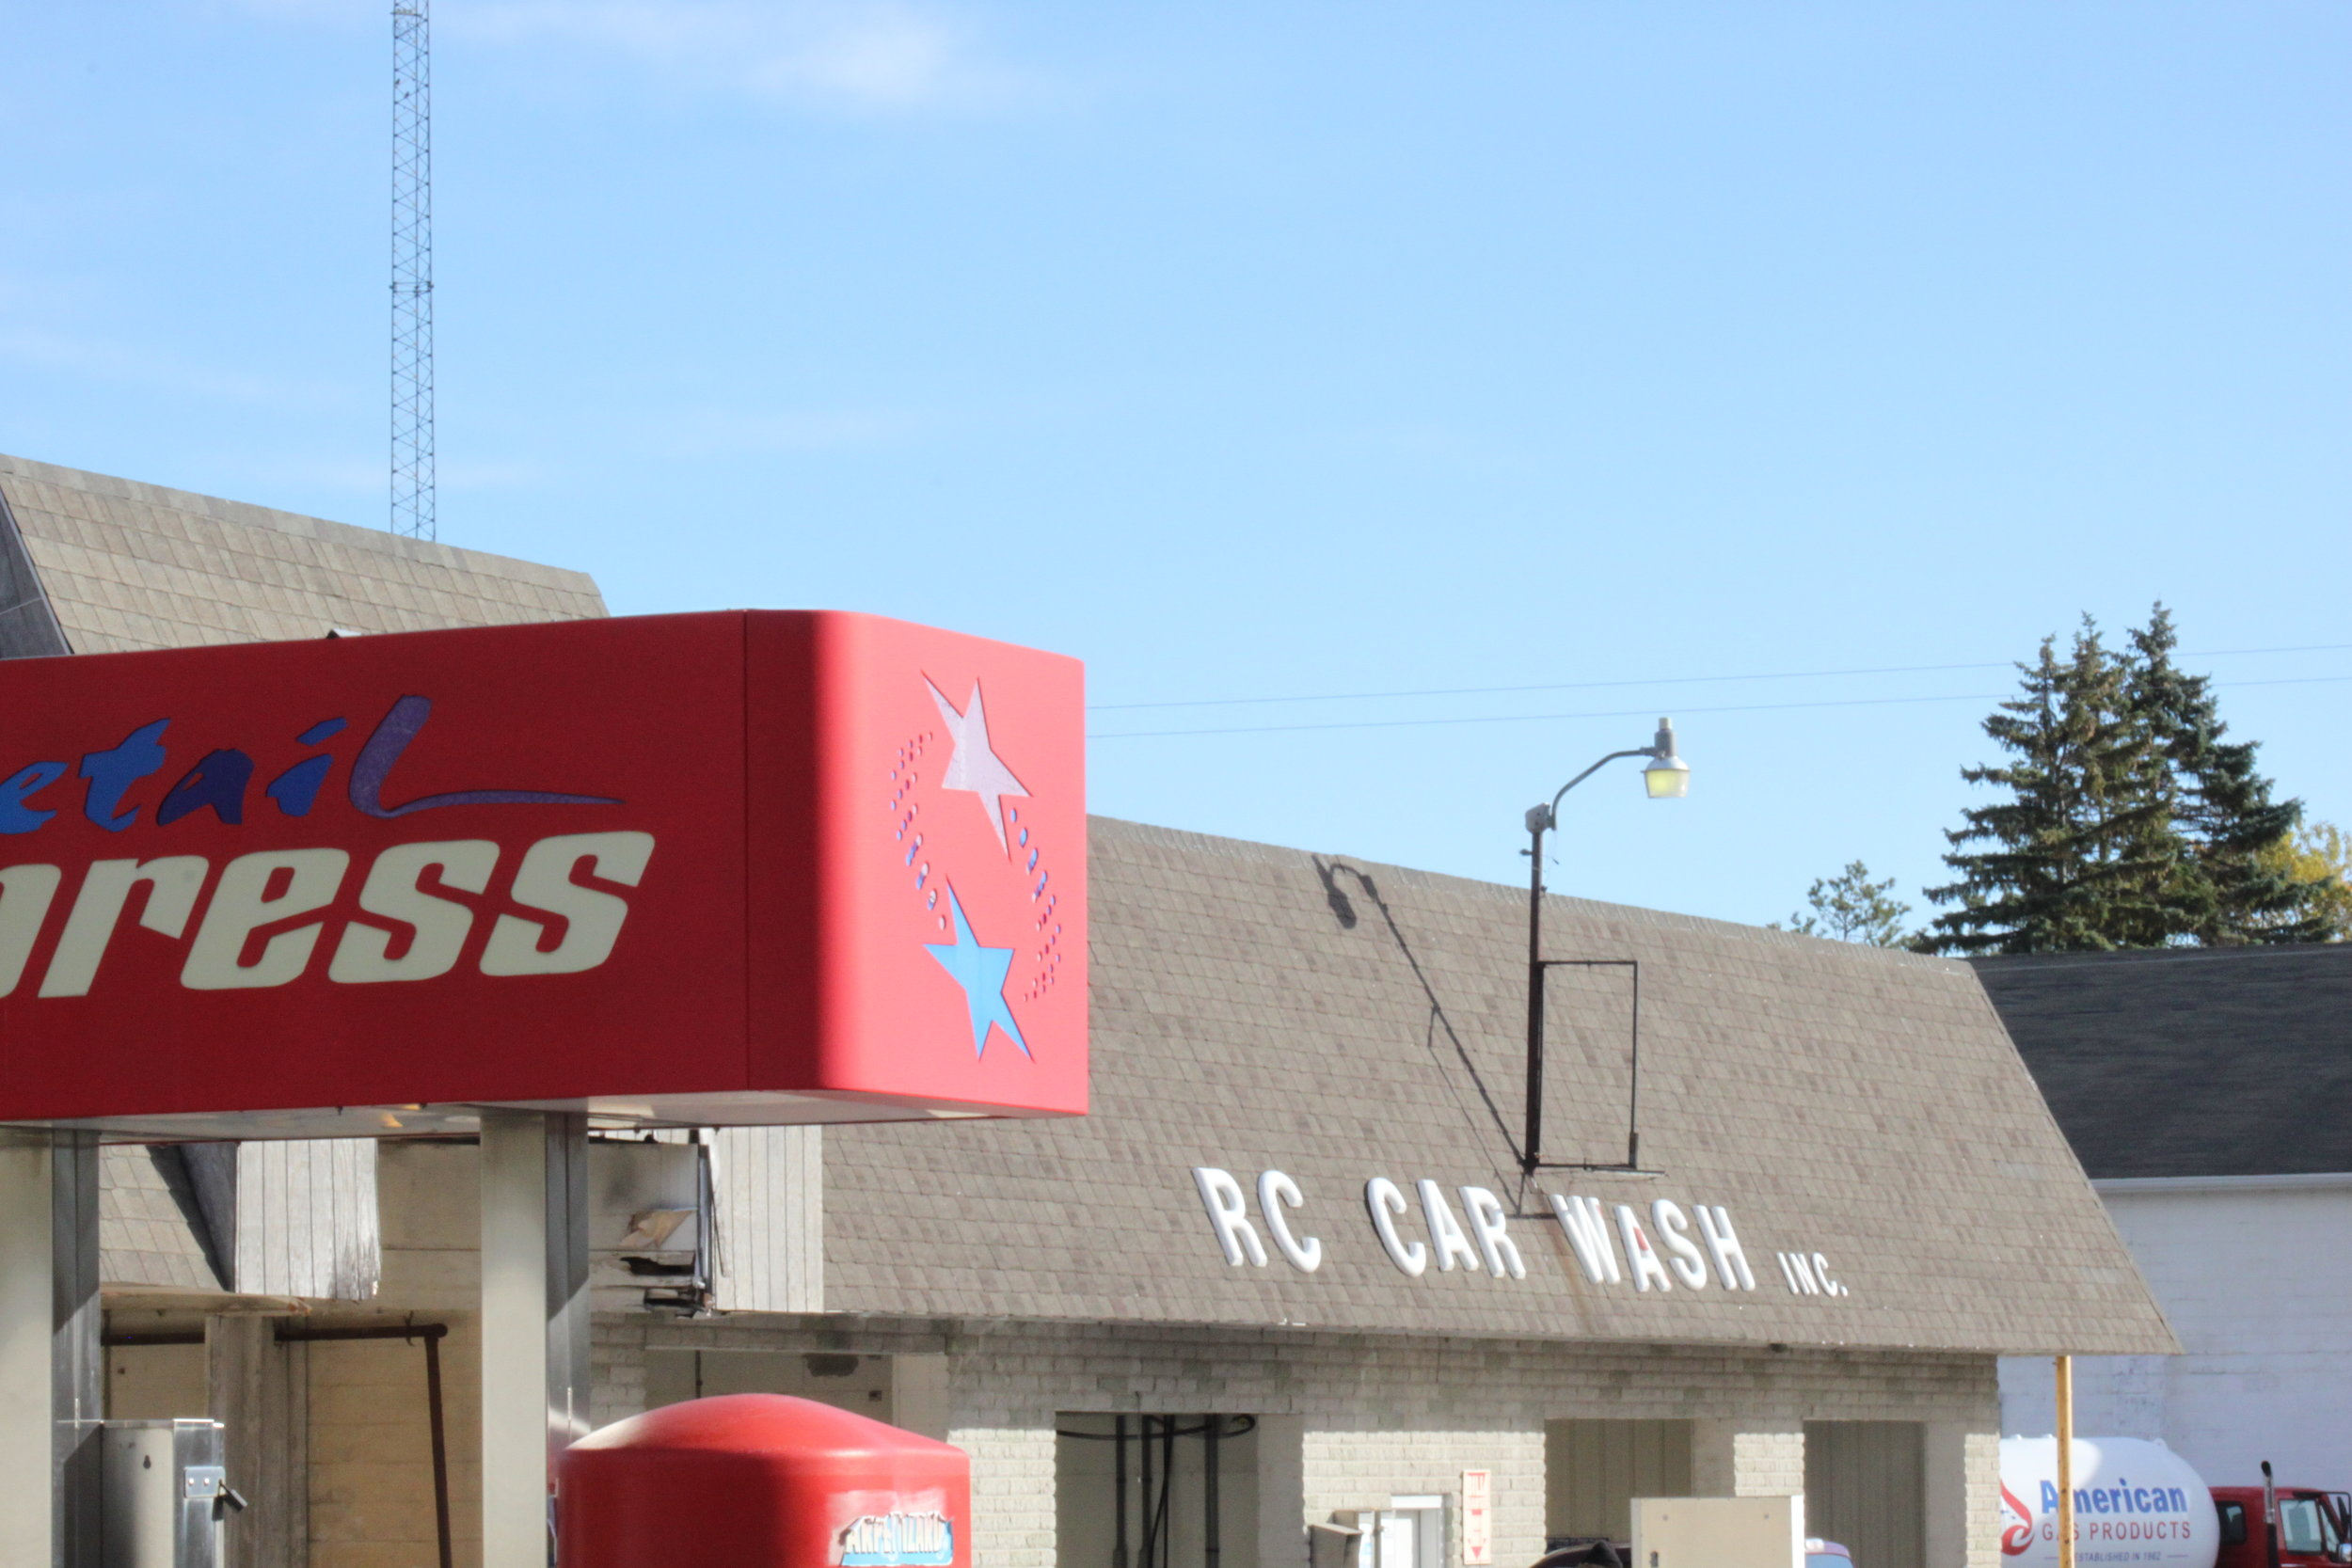 Rogers City Car Wash - 1210 W. Third St.Rogers City, MI 49779(989) 351-8216